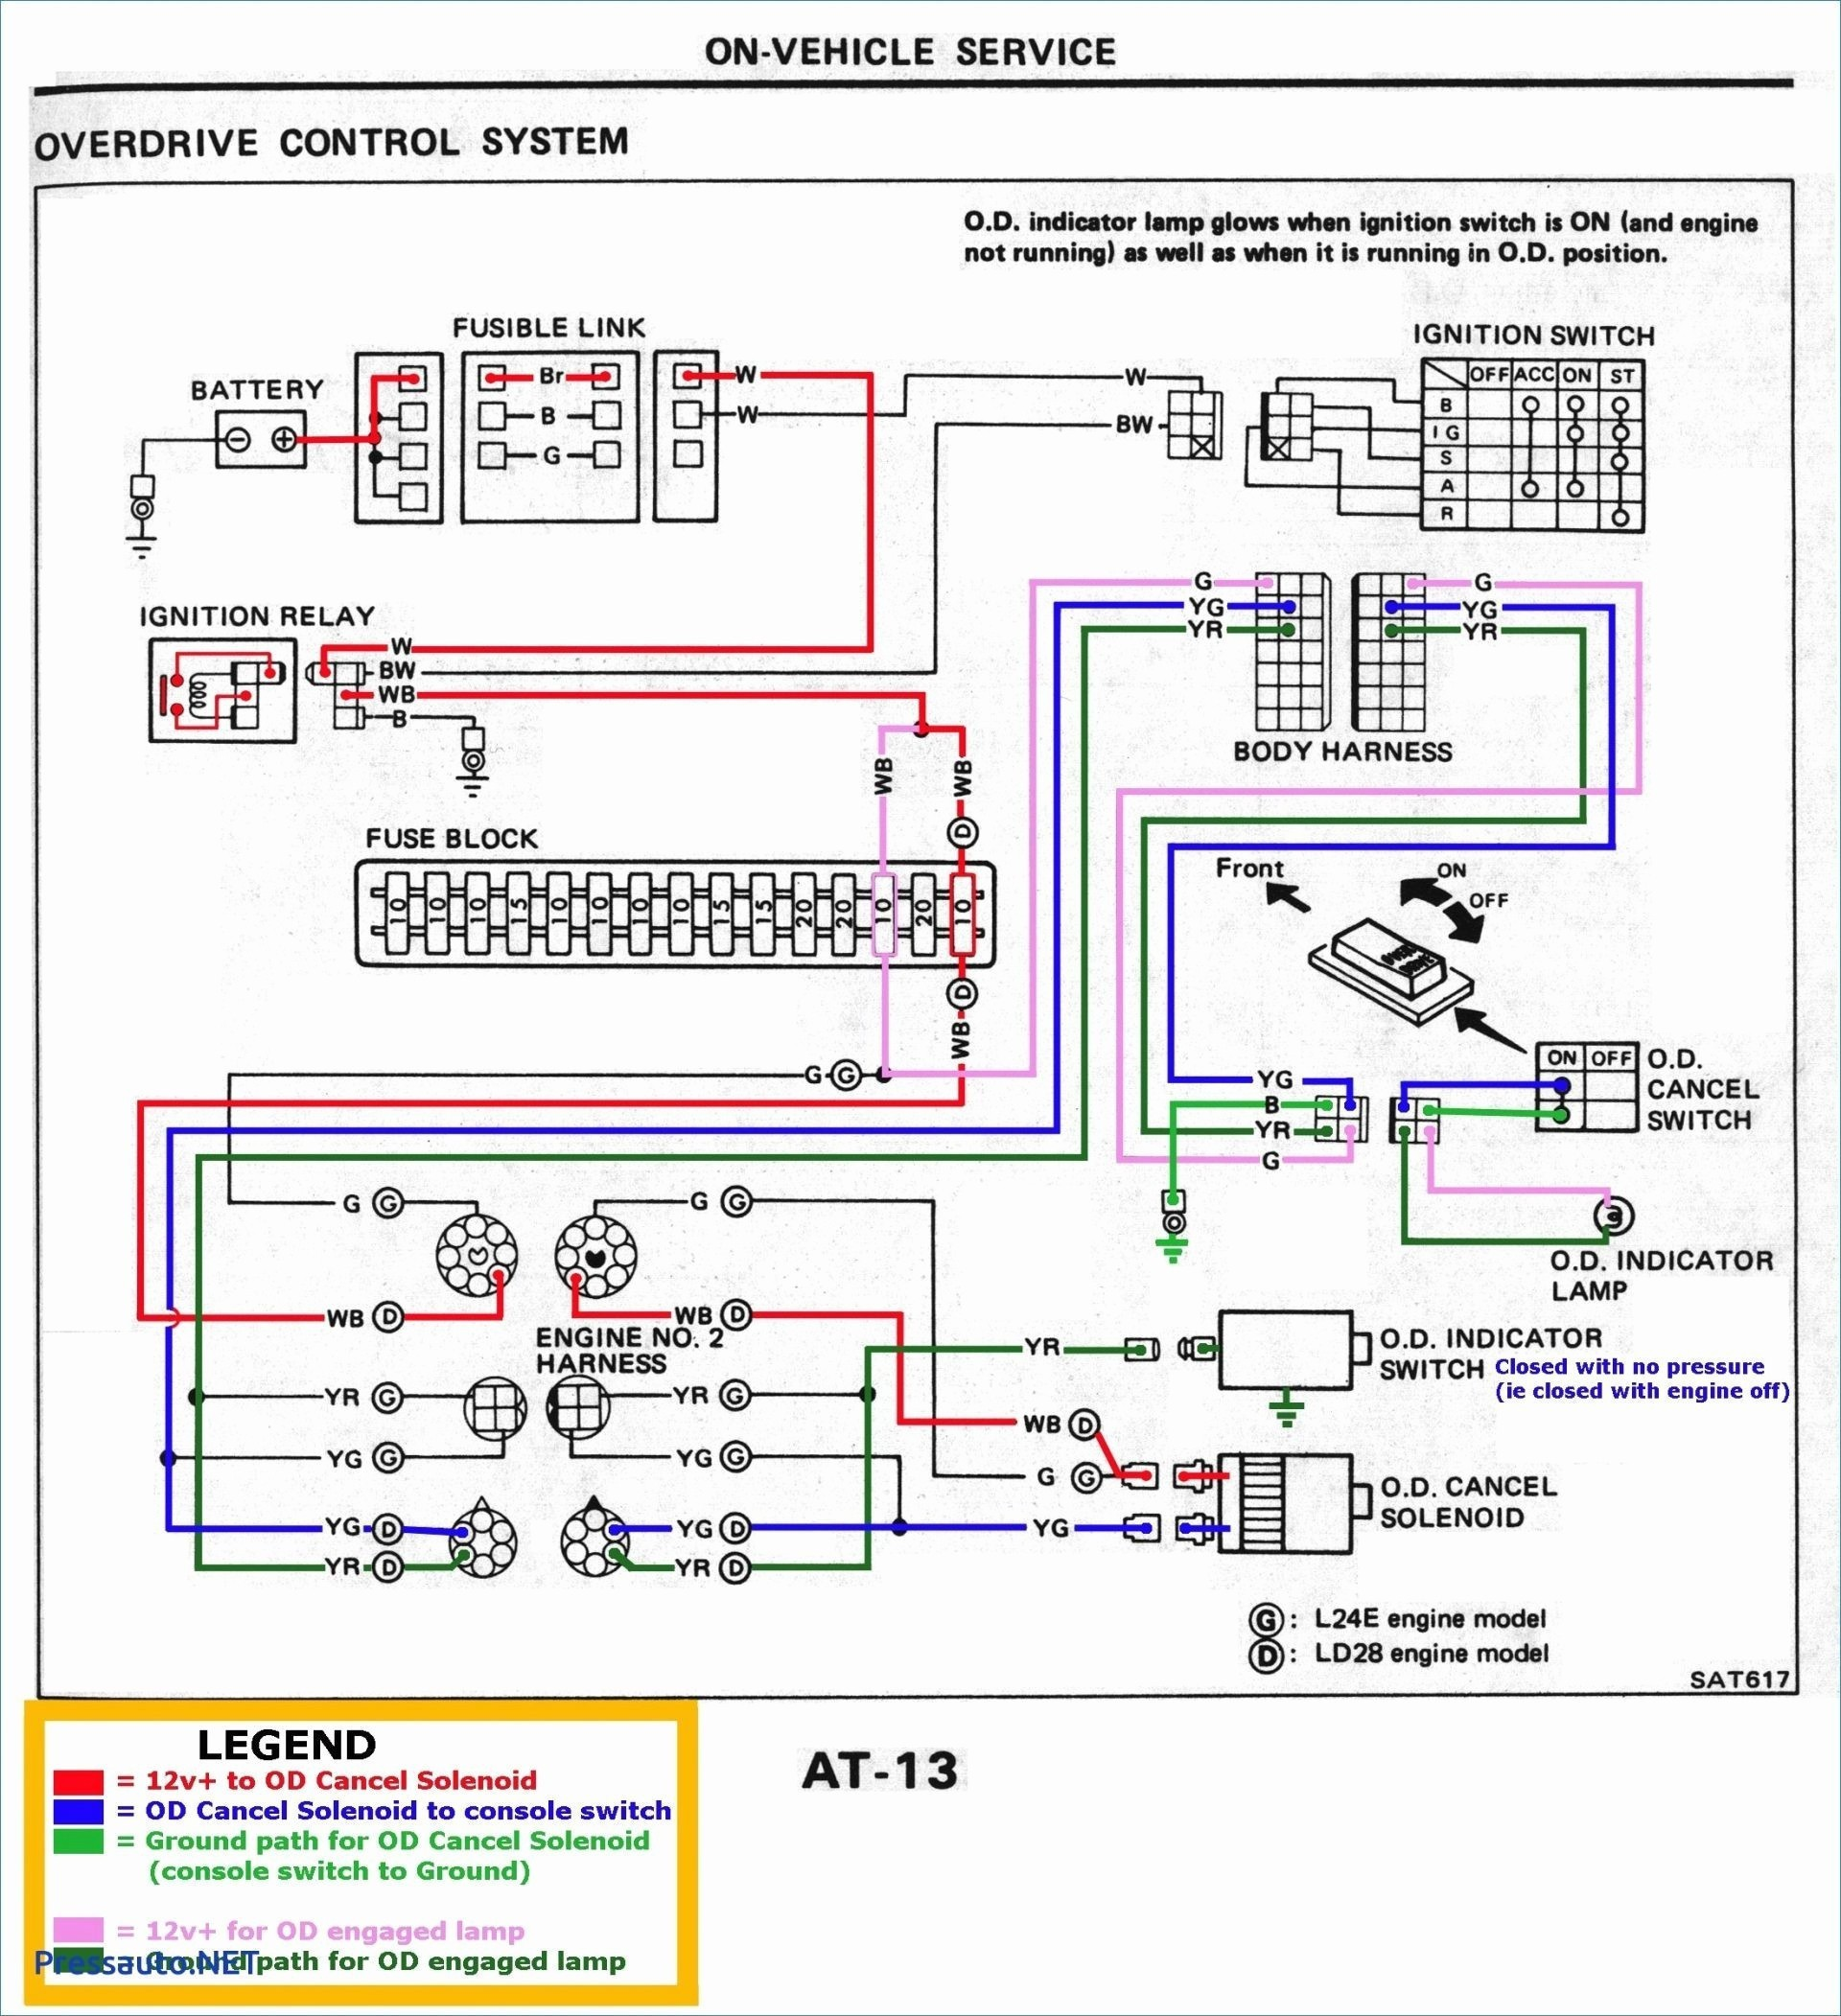 3 Phase Electricity Meter Wiring Diagram Book Wiring Diagram Electric Meter Best Wiring Diagram Kwh Meter 3 Phase